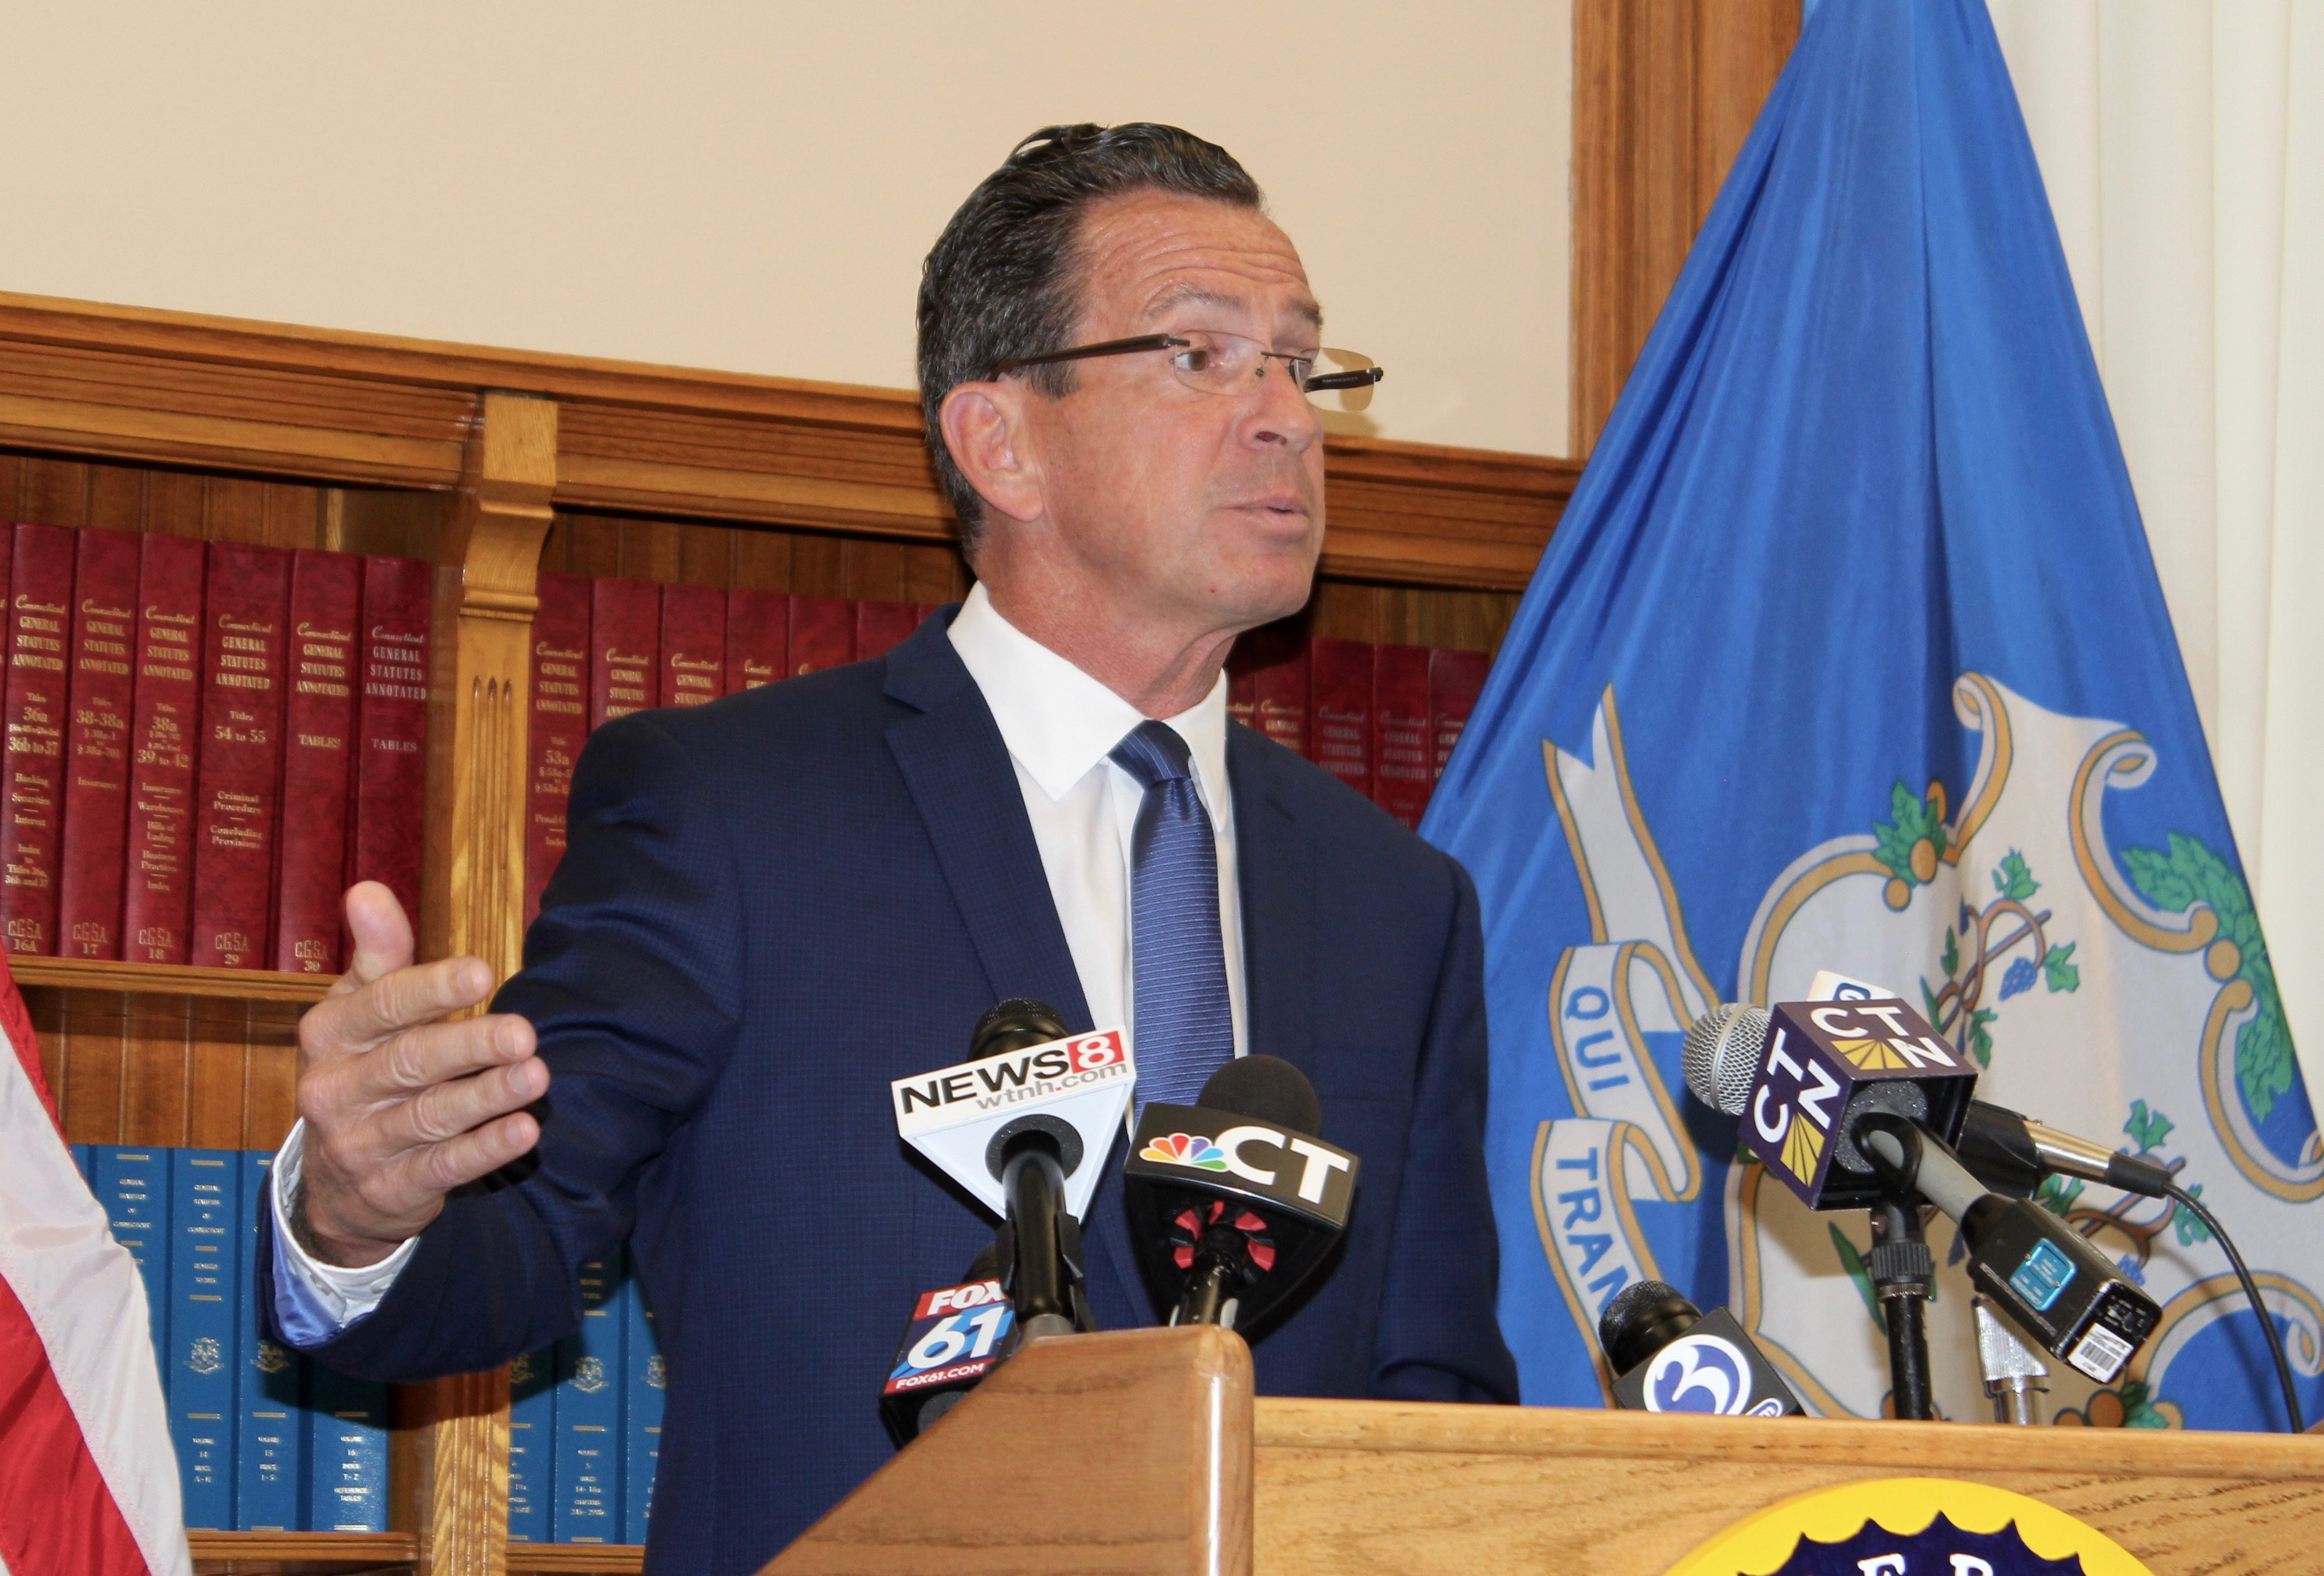 Malloy defends his track record on aiding cities and towns